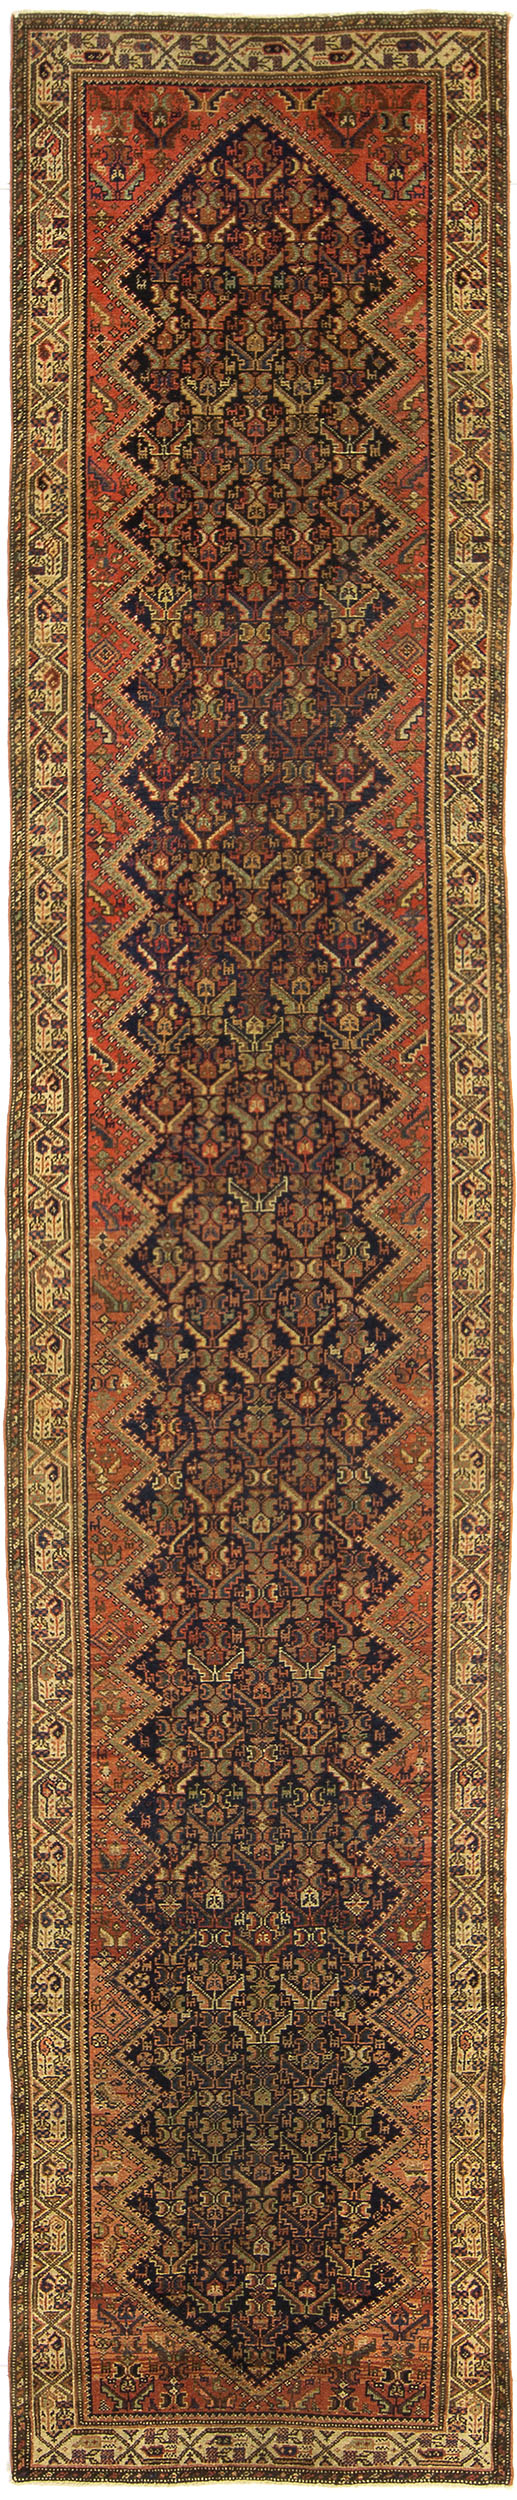 "Malayer Runner 13' 7"" x 2' 8"""